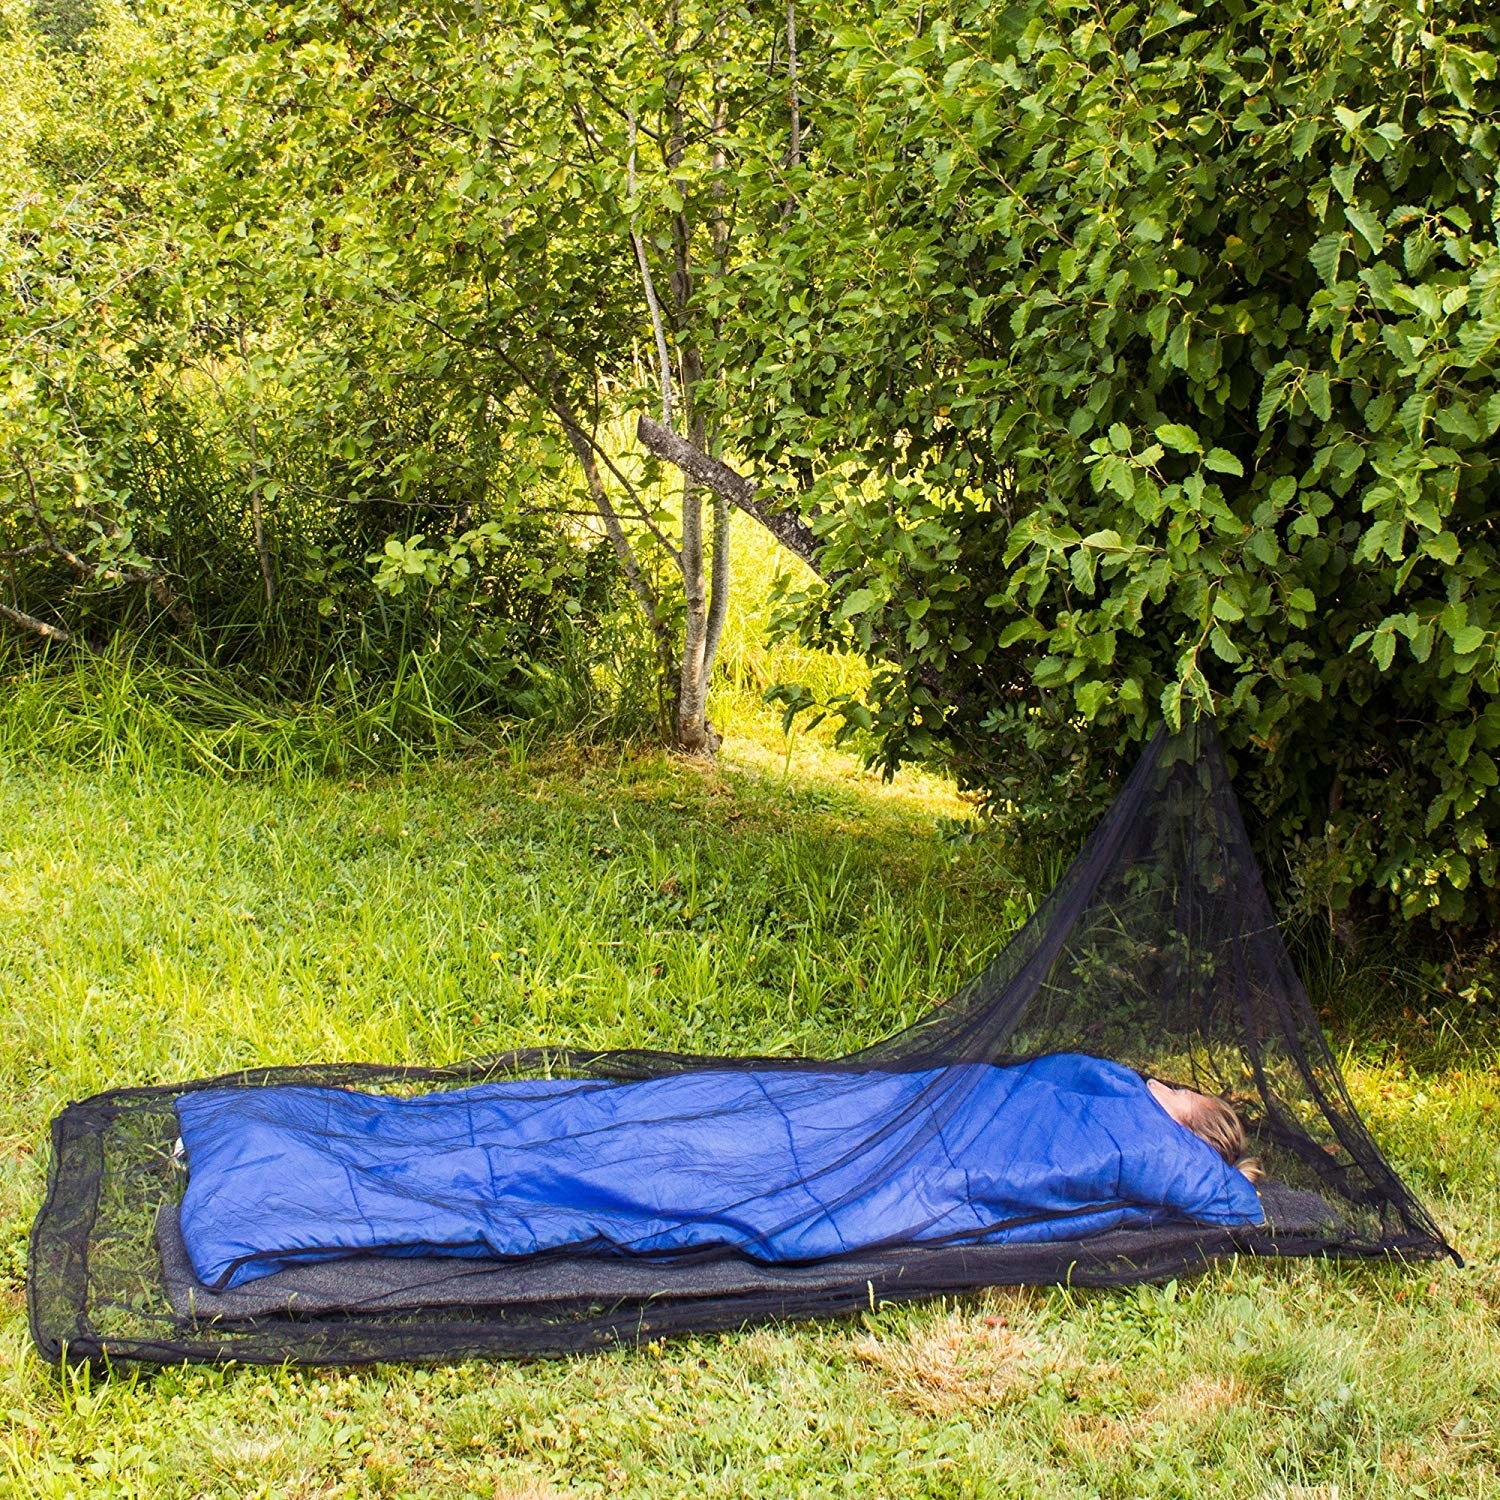 person in a sleeping bag on grass with the sheer net tent surrounding them, hung up from a low tree branch